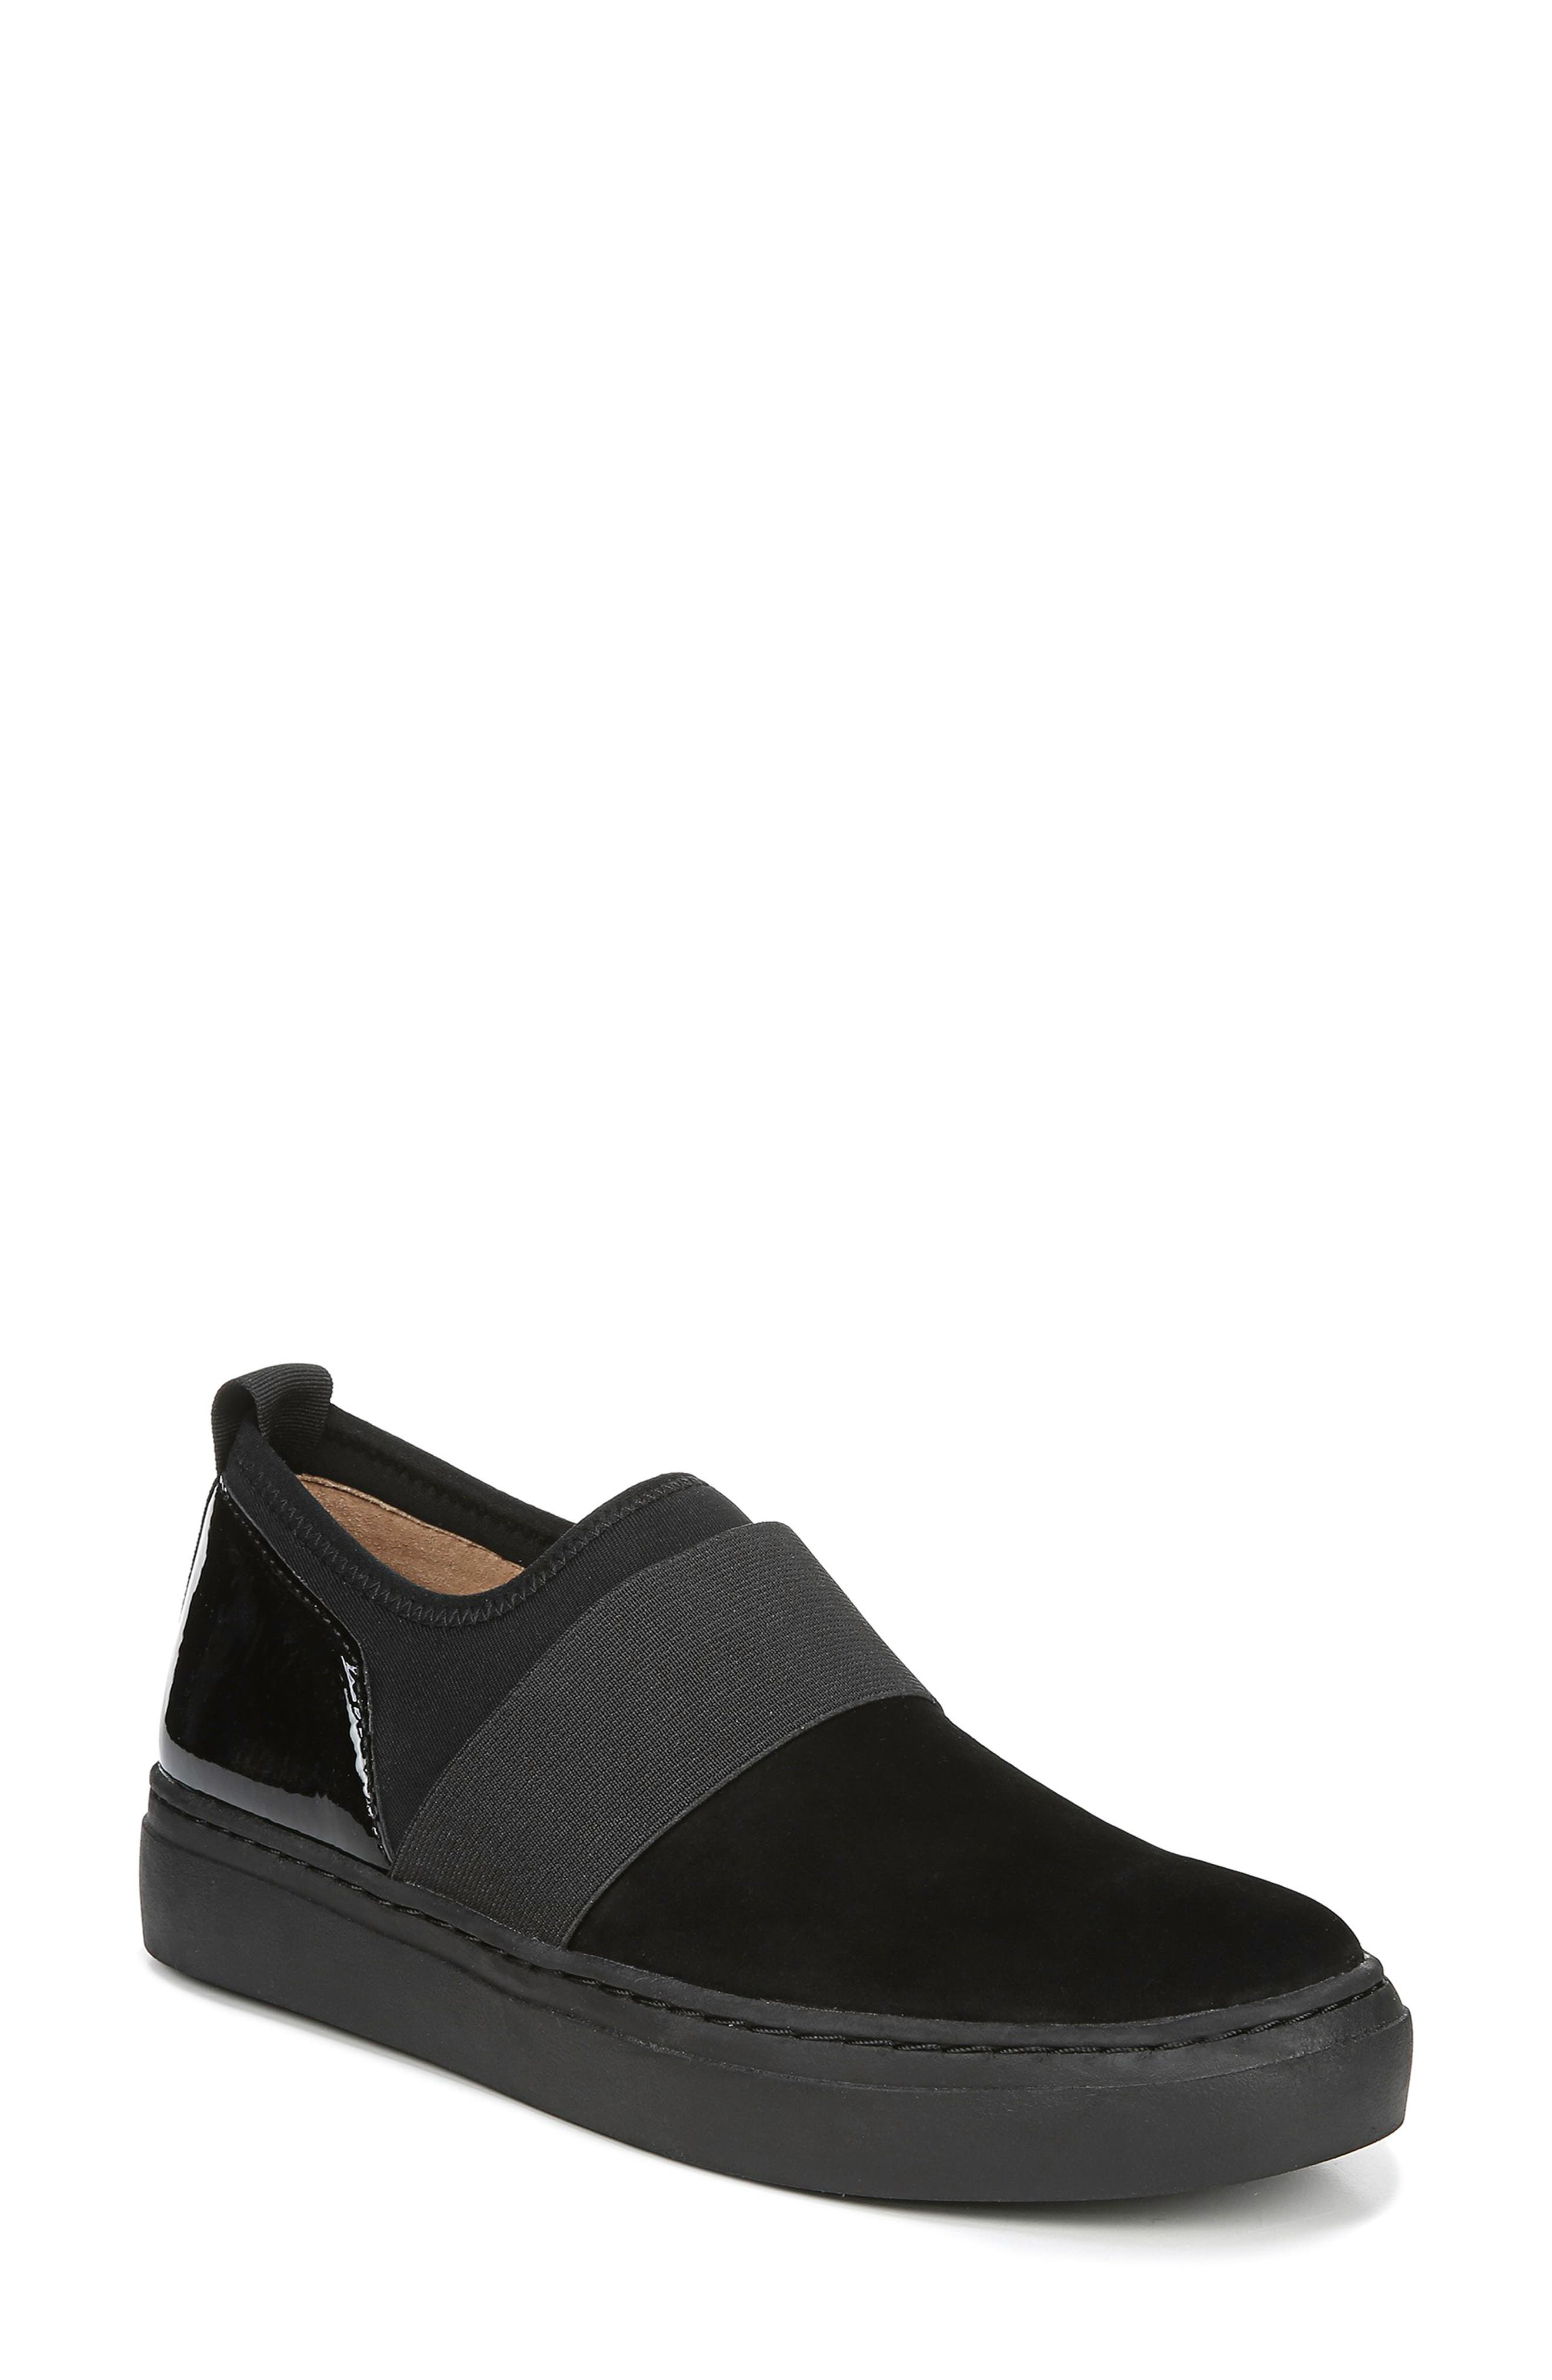 Naturalizer Cassey Slip-On Sneaker, Black